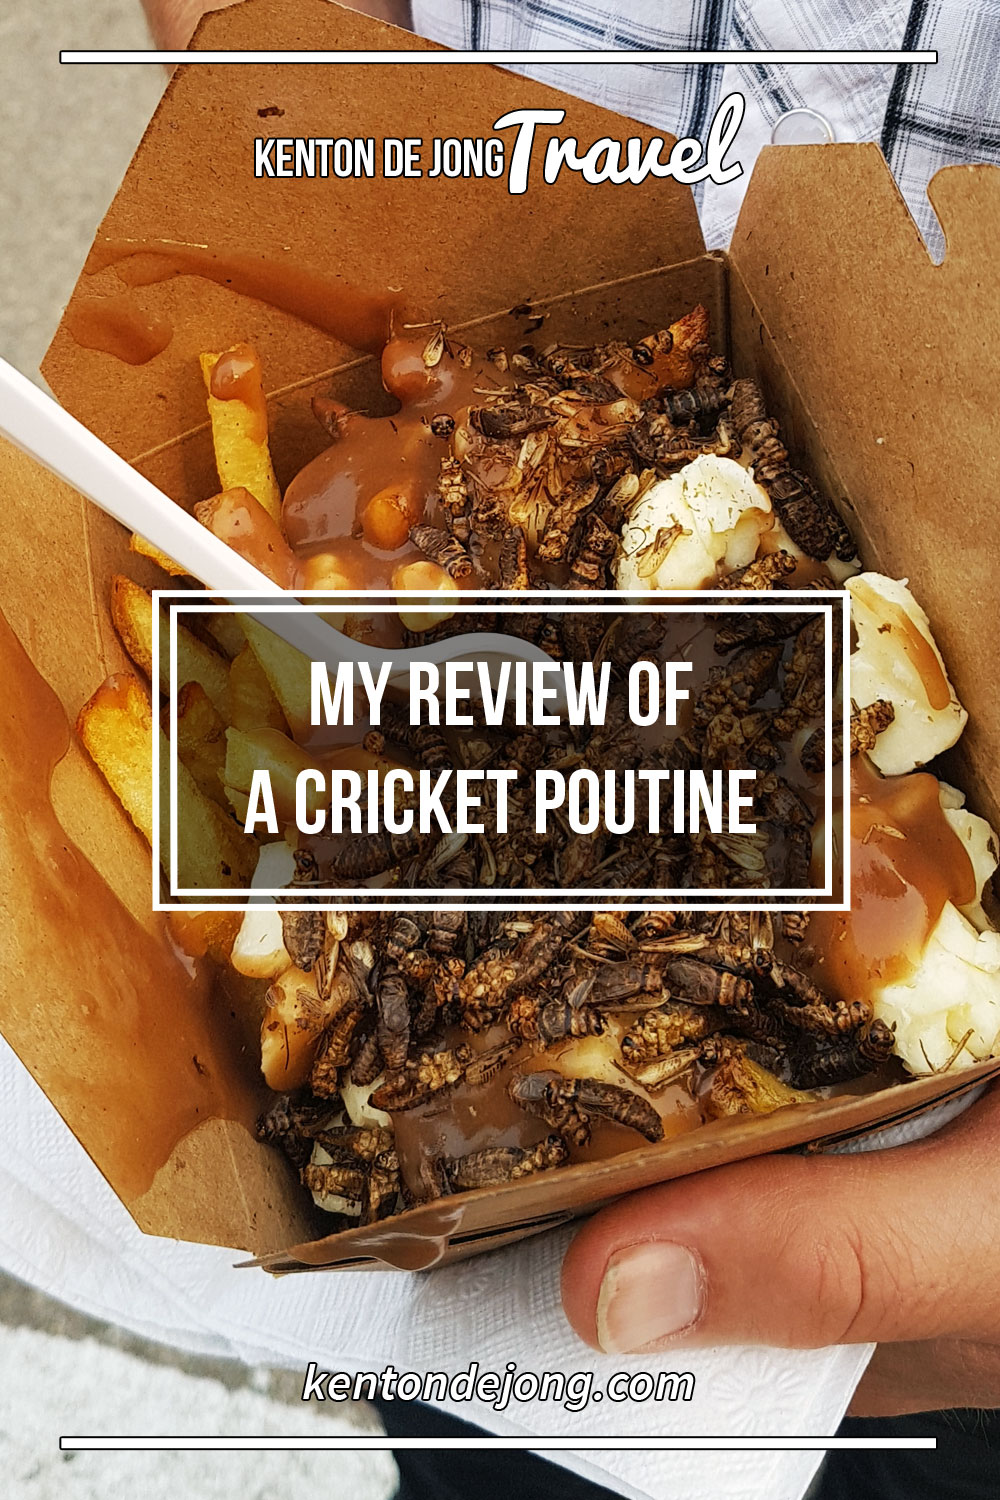 My Review of a Cricket Poutine